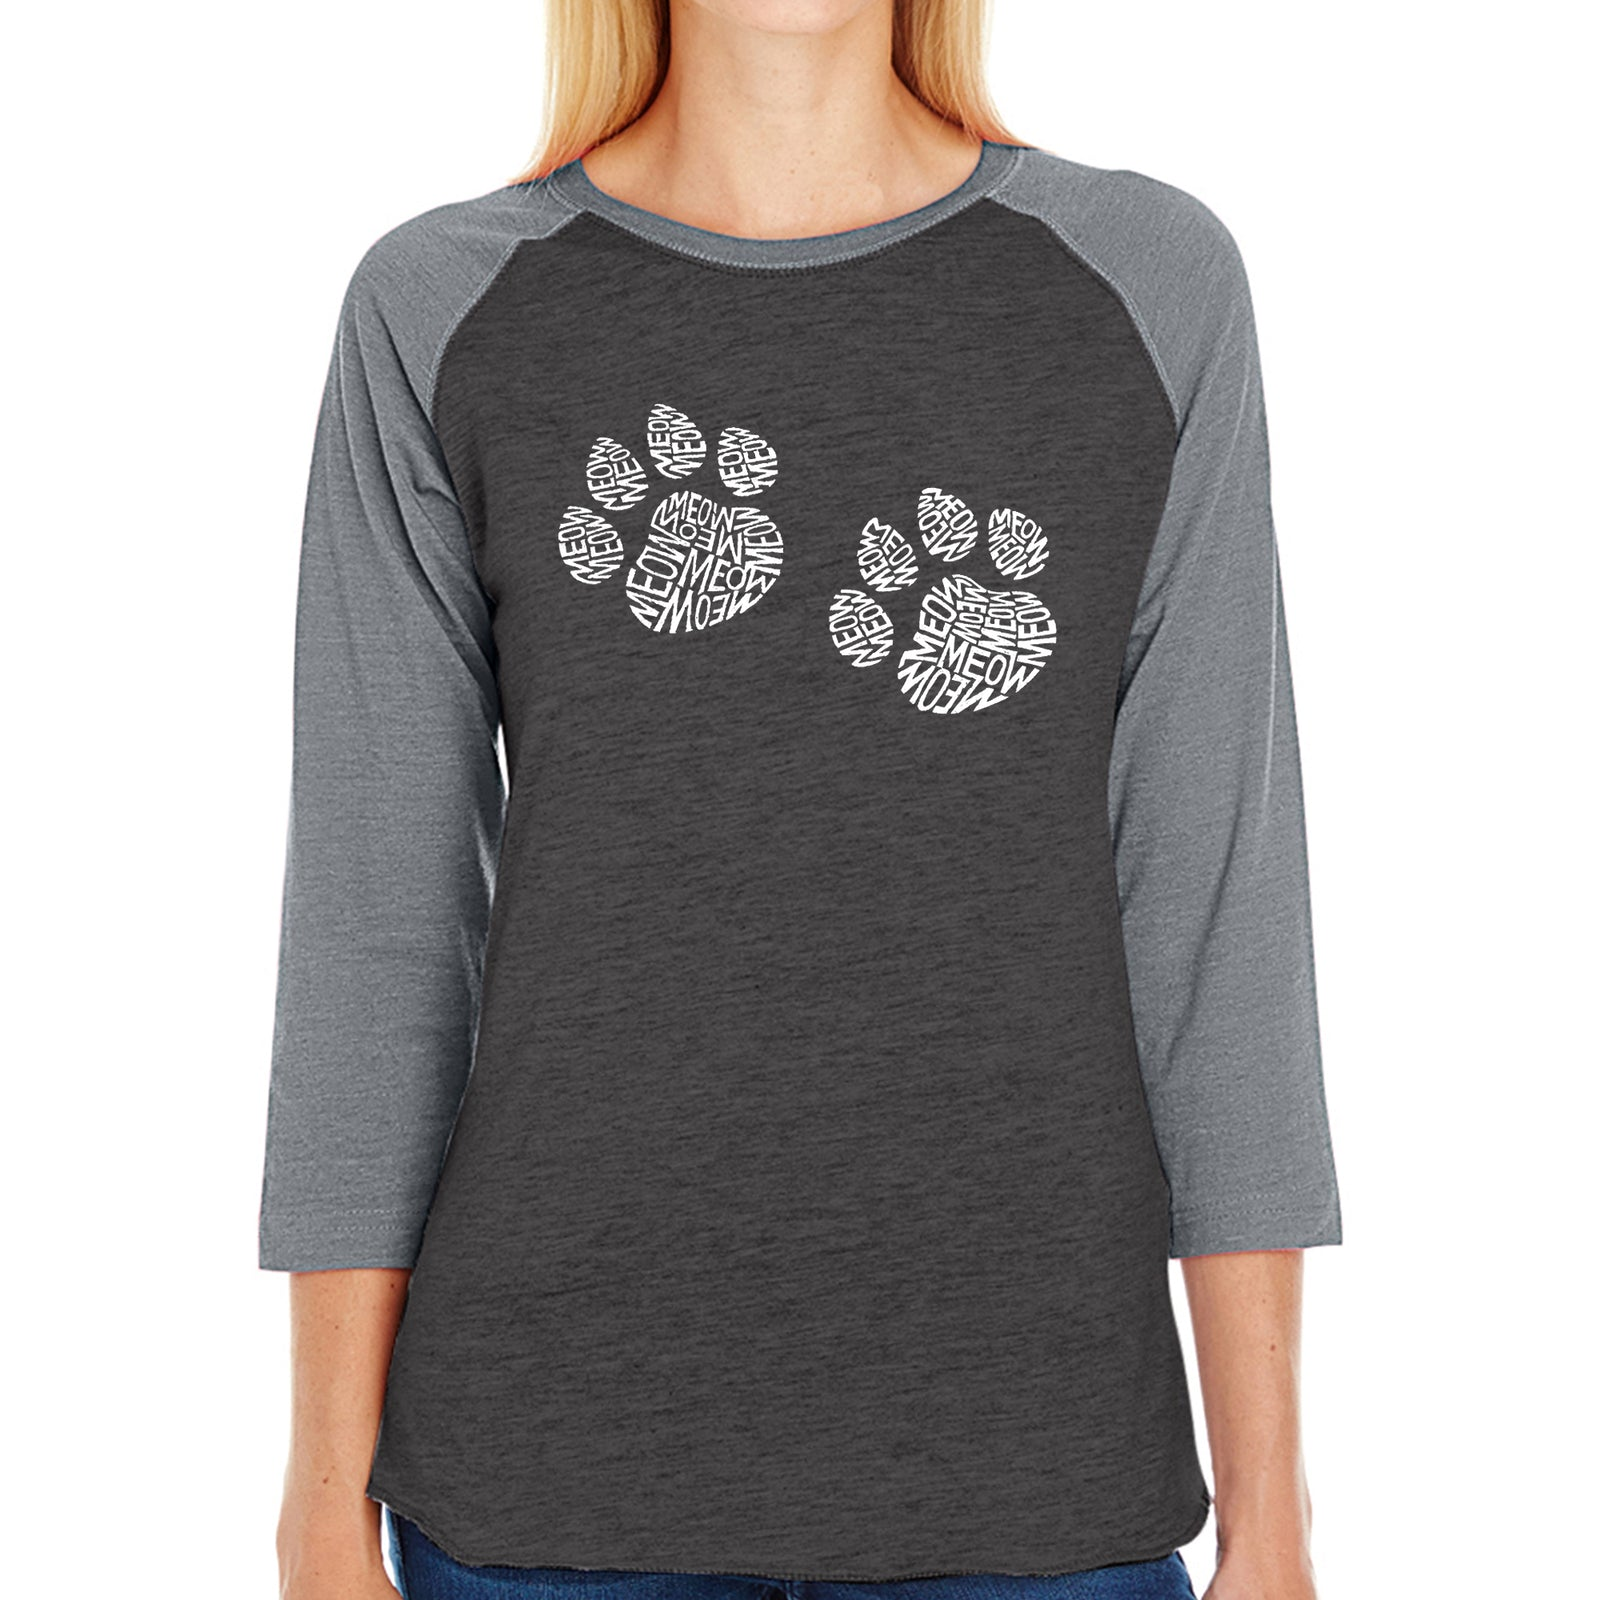 Women's Raglan Baseball Word Art T-shirt - Meow Cat Prints